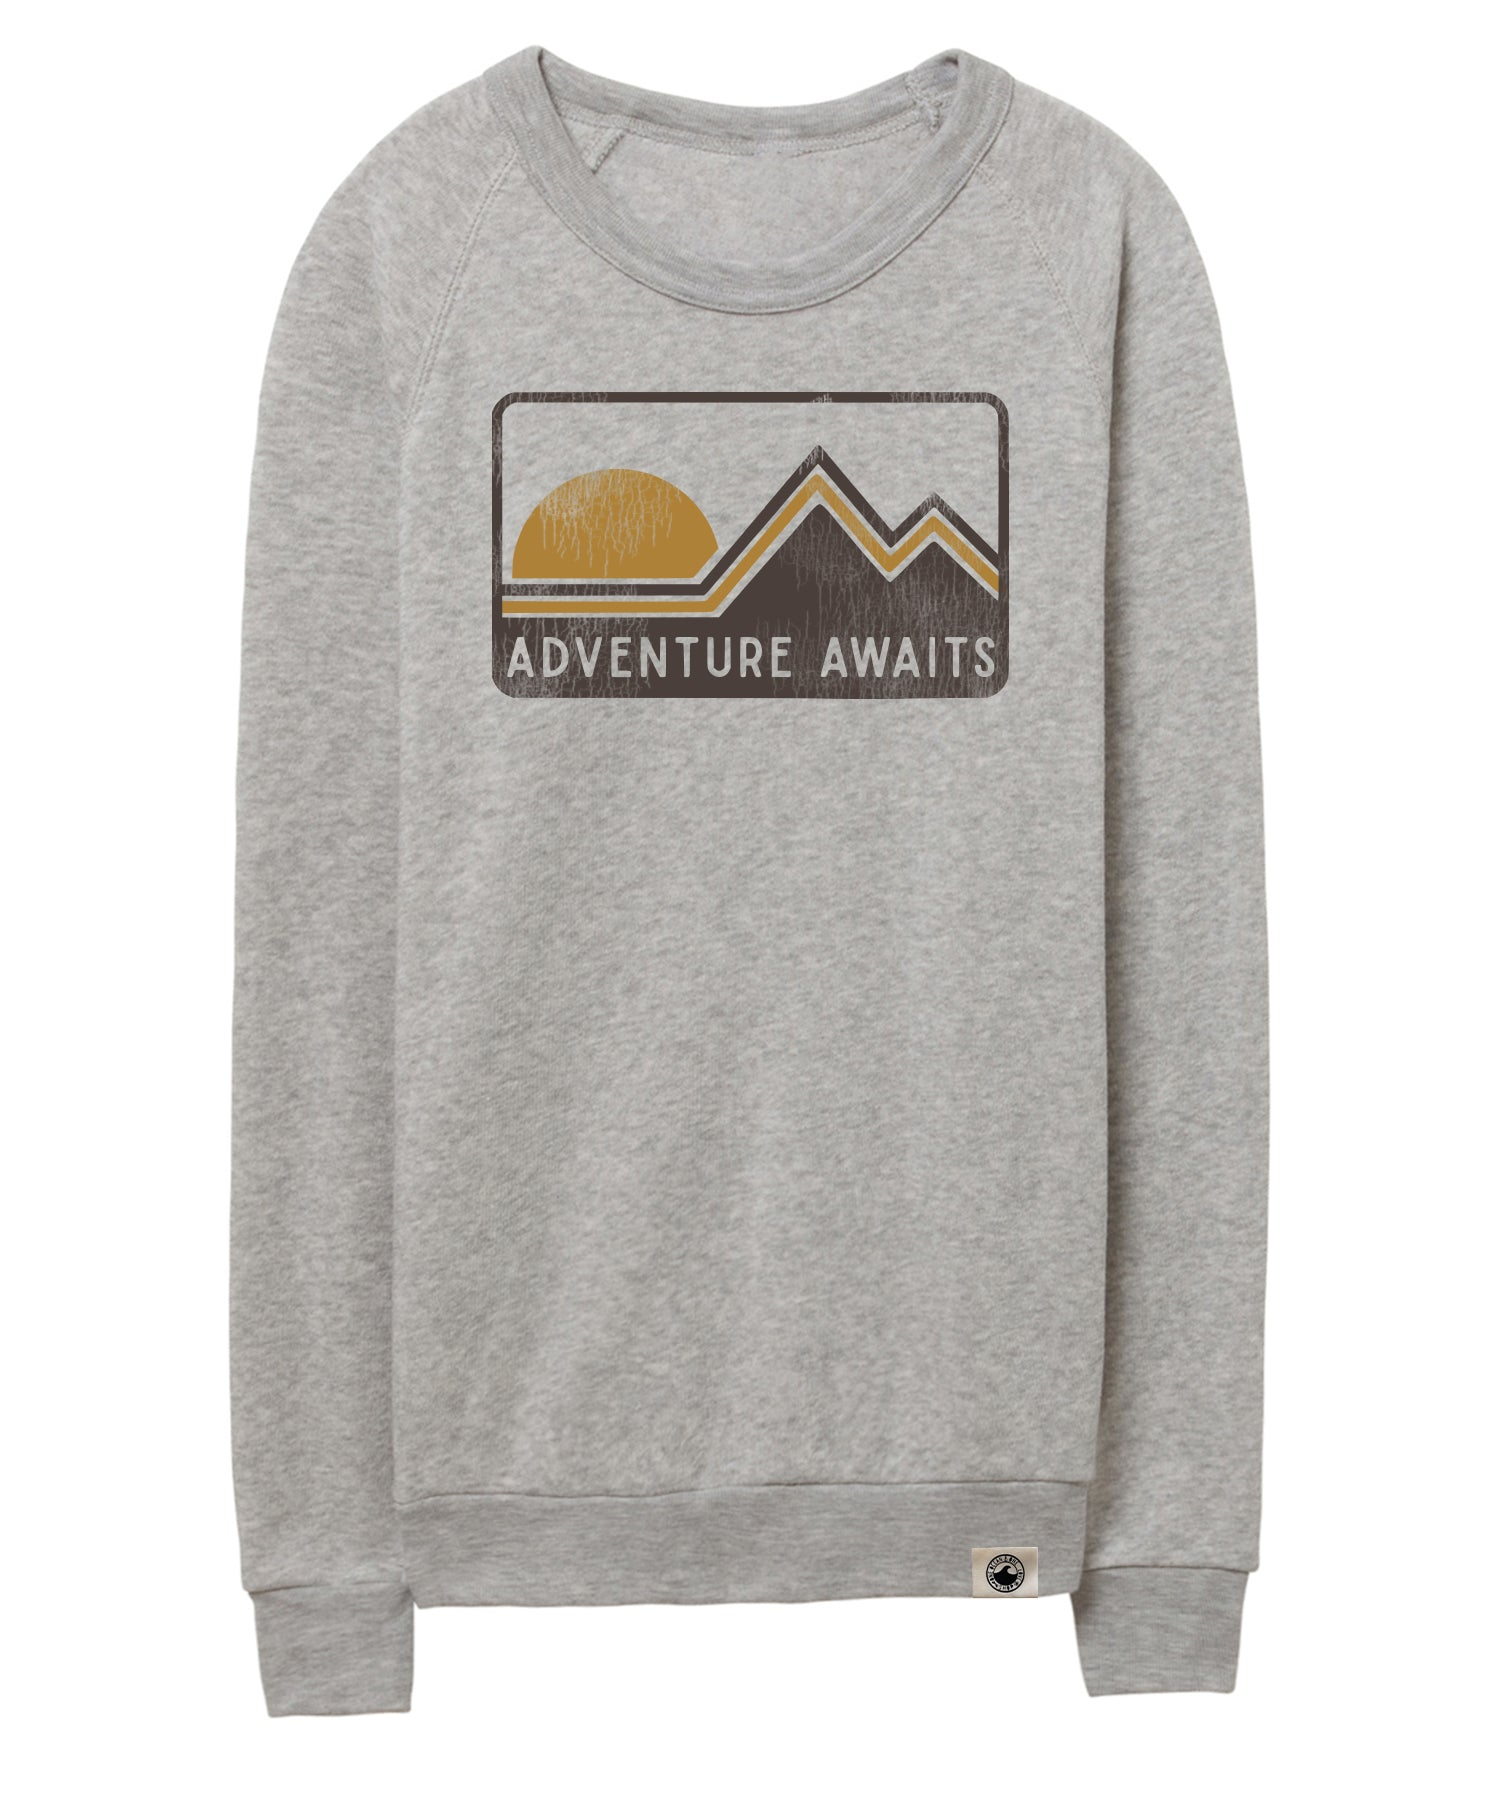 Adventure Awaits Crewneck Sweatshirt